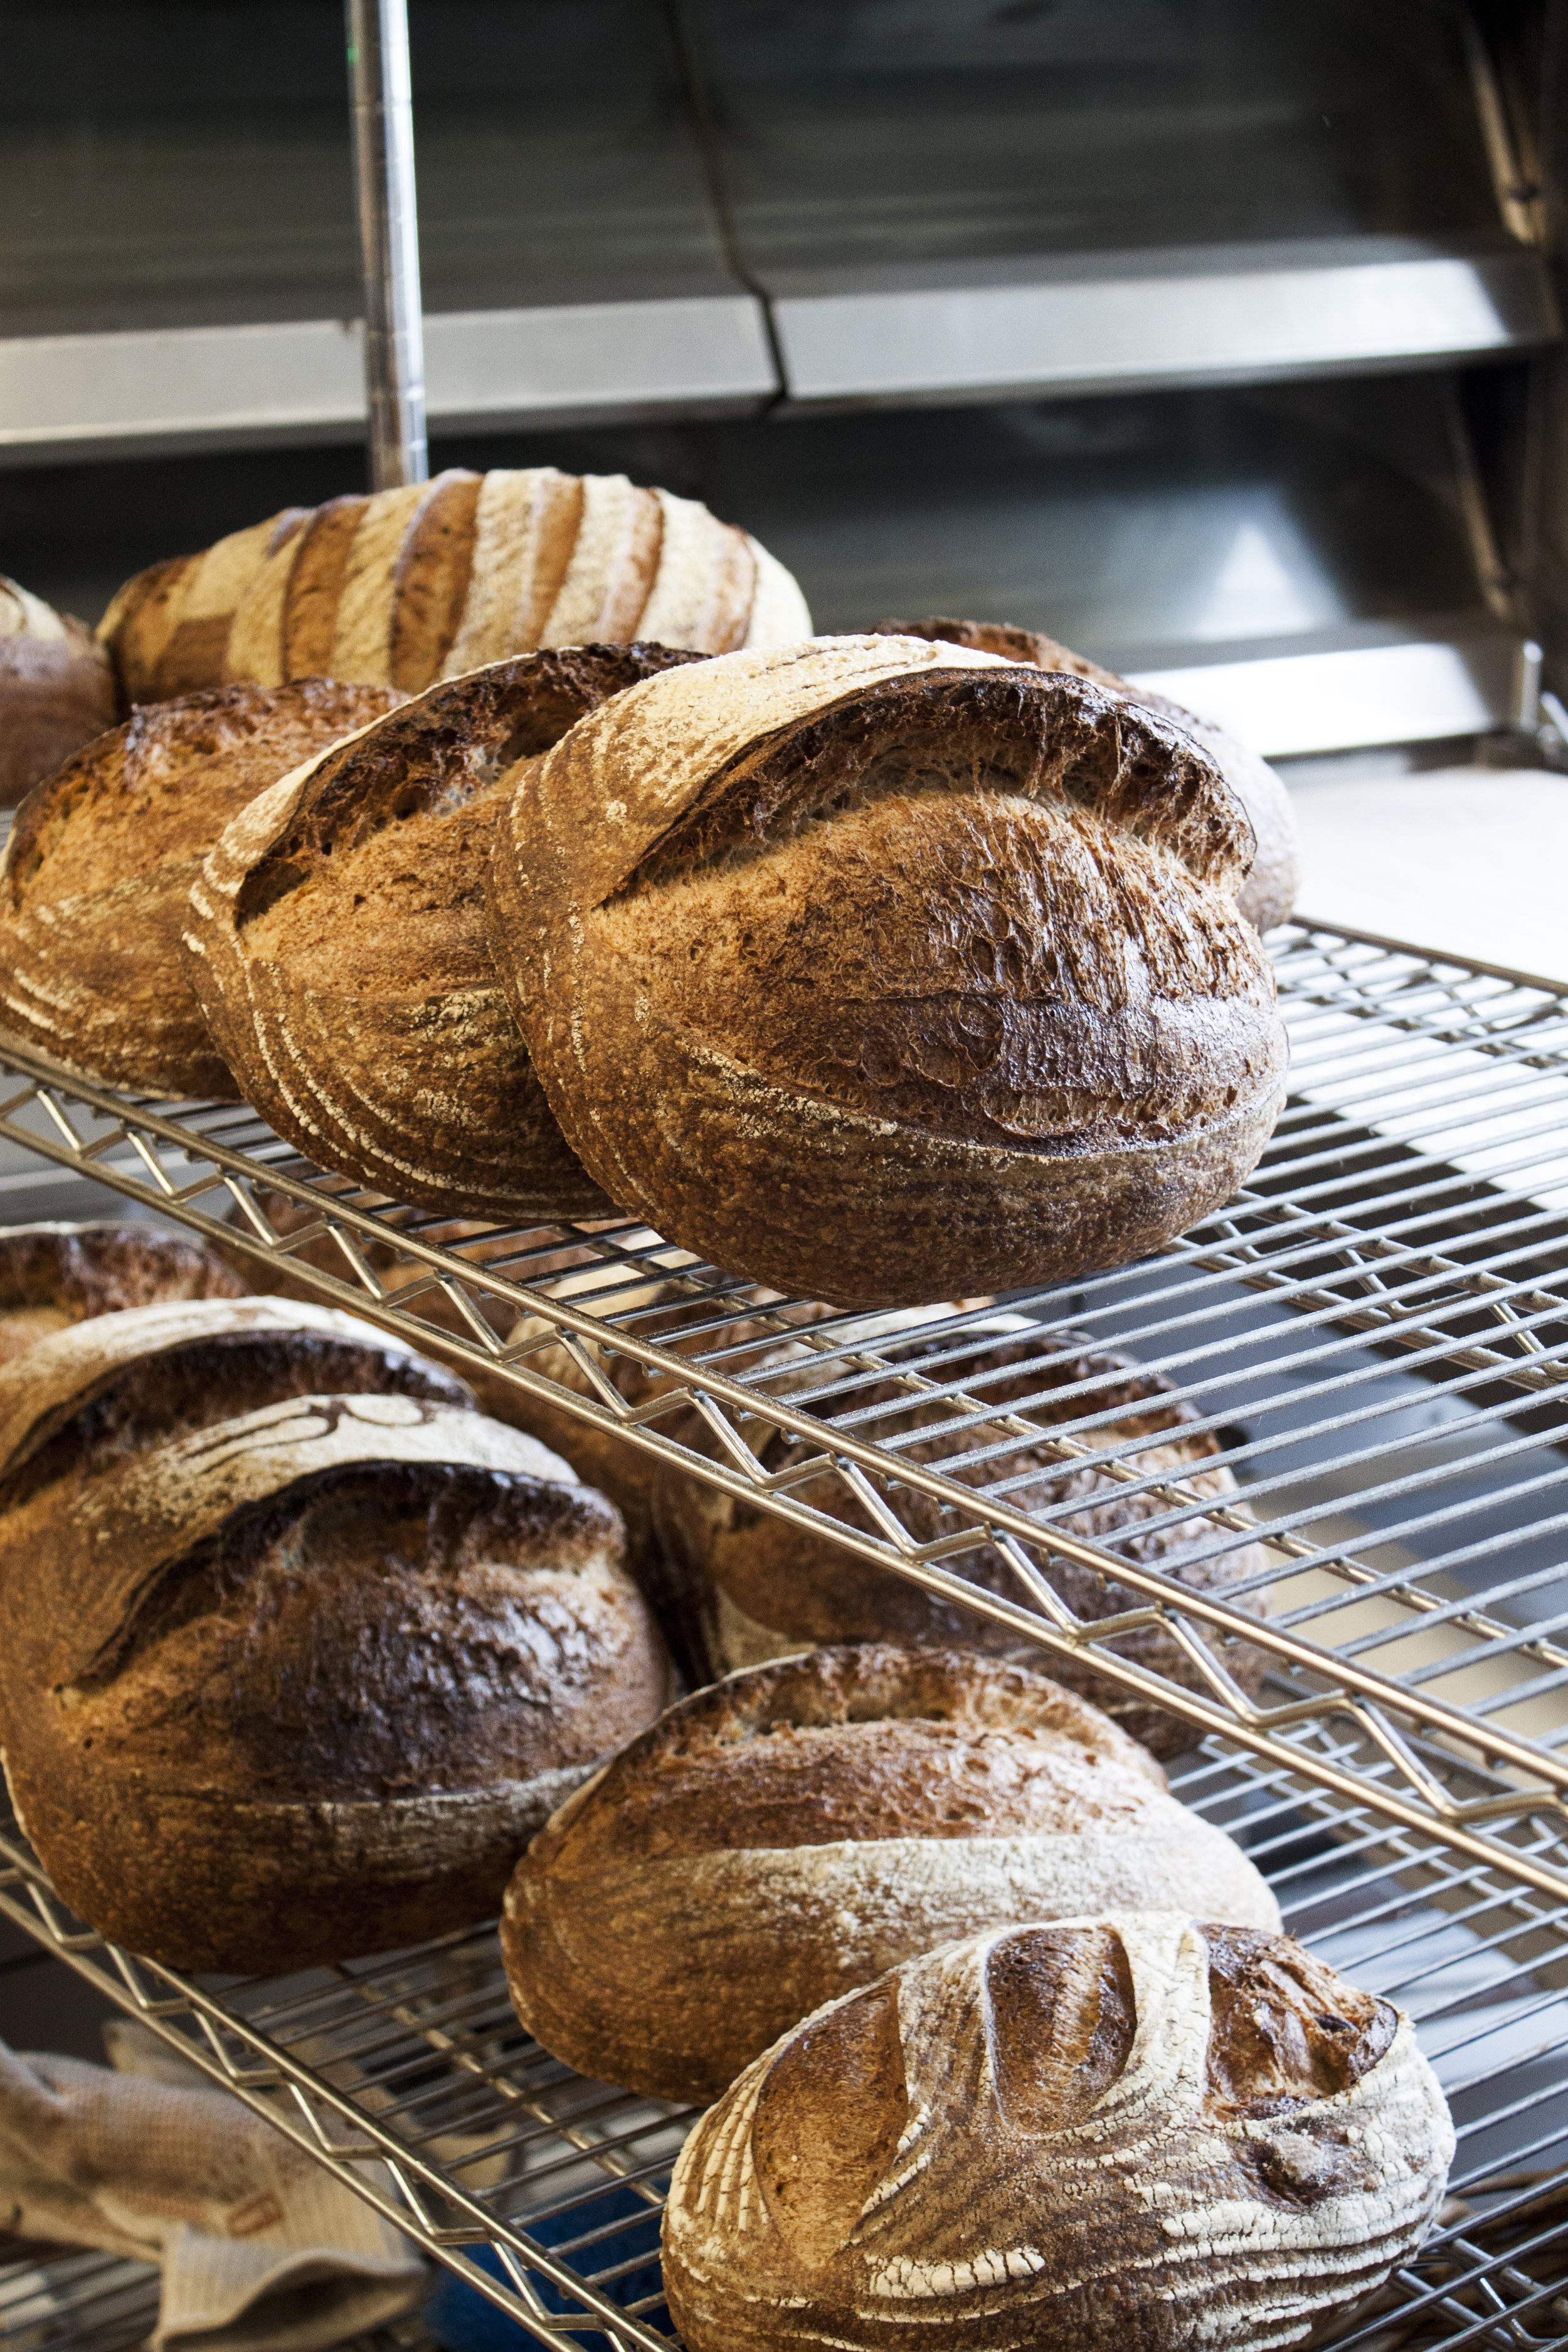 bob's well bread bakery, best california bakeries, los alamos restaurants, los alamos ca, where to eat in los alamos, los alamos travel guide, los alamos dining